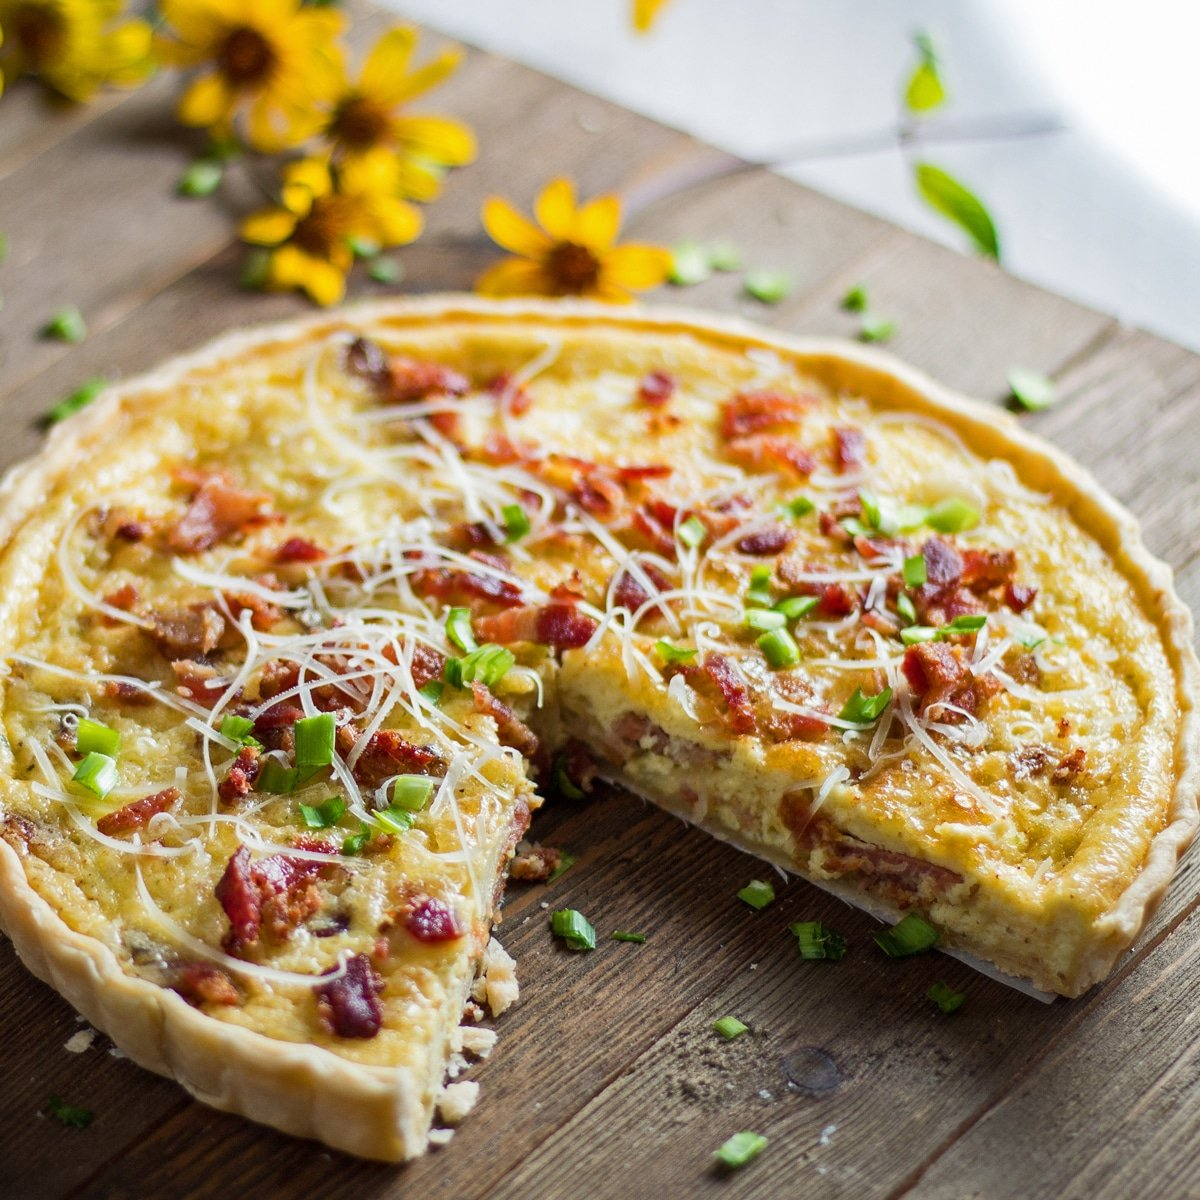 What to serve with quiche when sliced and ready to enjoy.